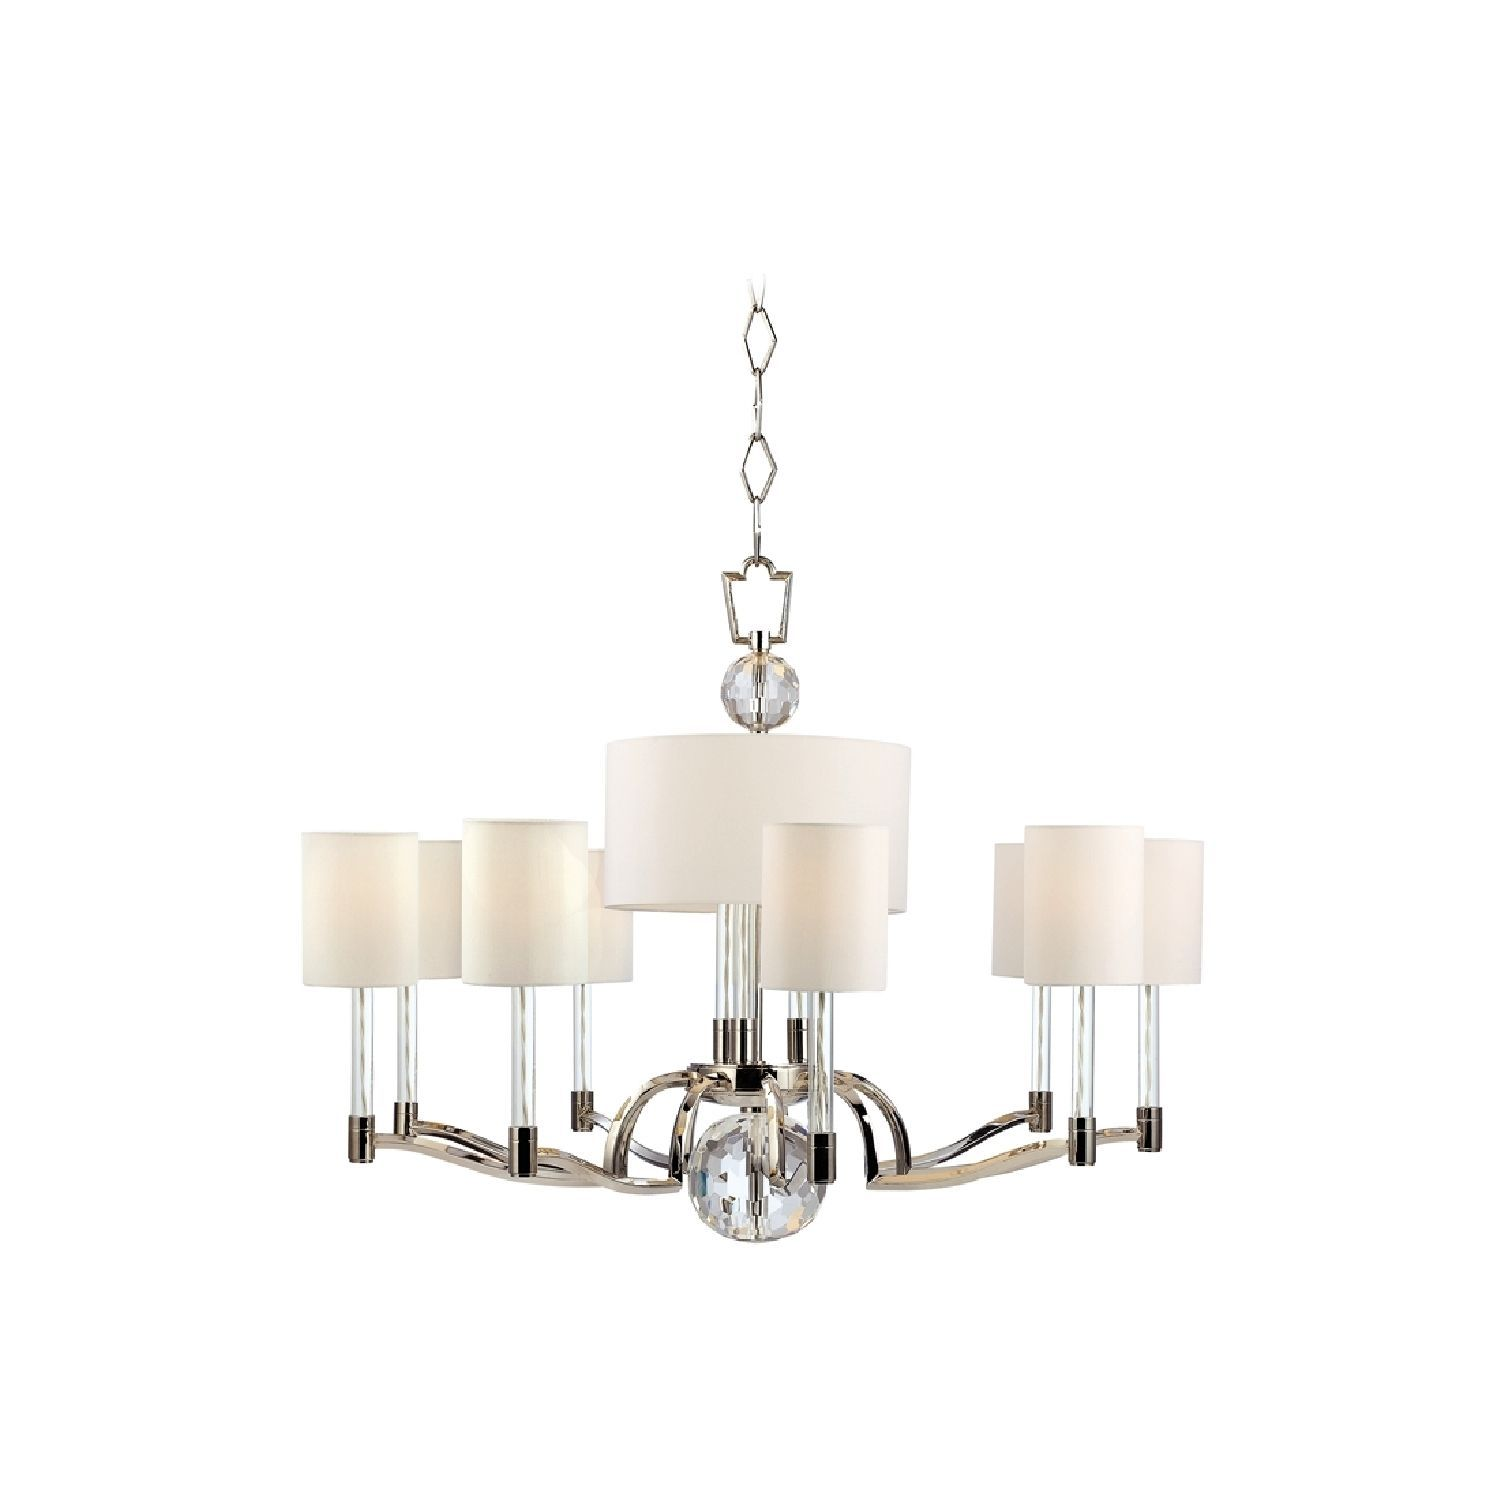 Dakota Candle 12lt Rec Chandelier W Downlights Chandelier Candle Shades Downlights